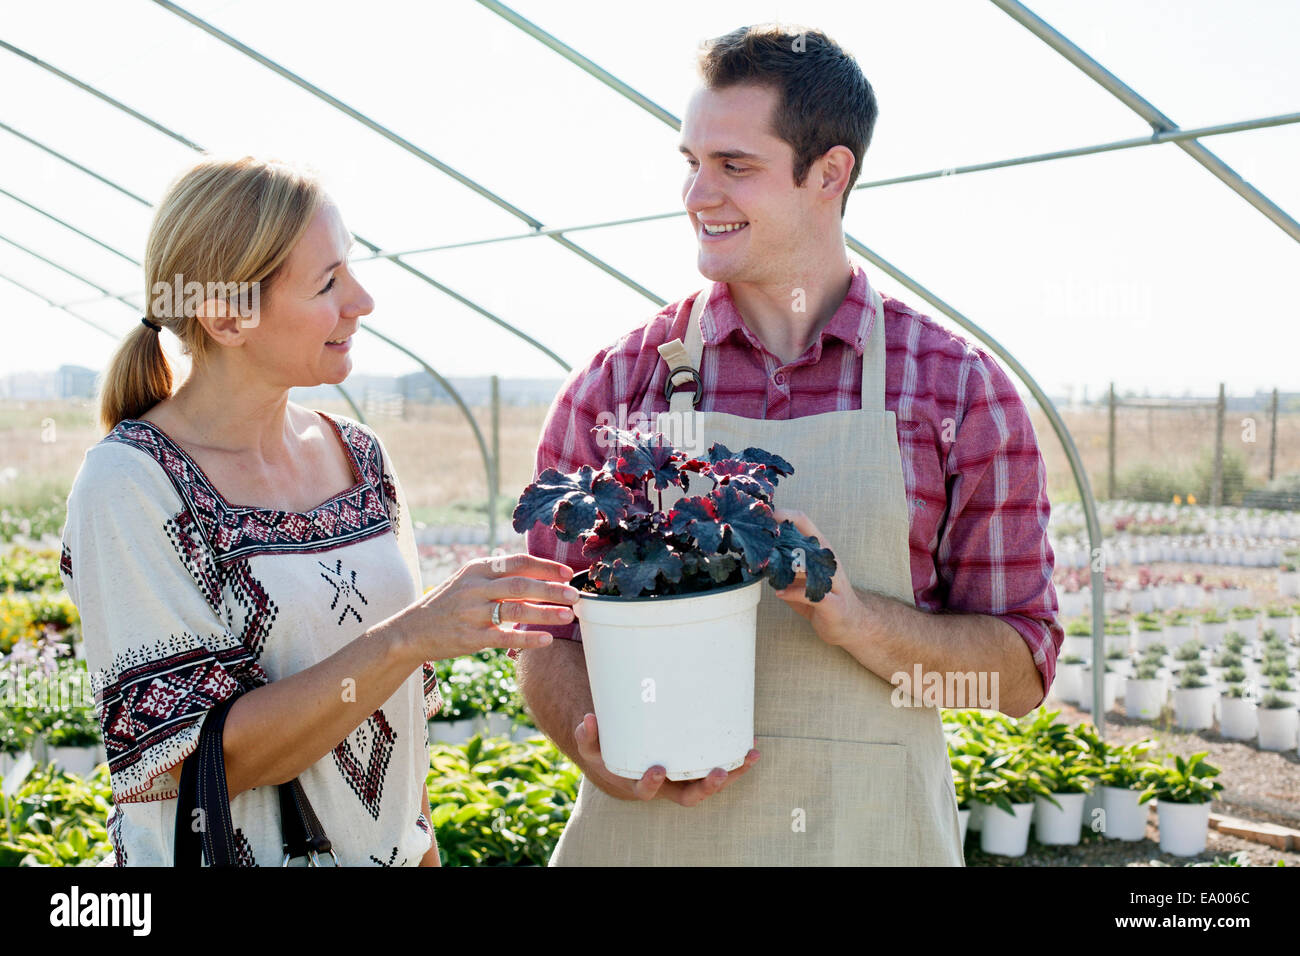 Young male horticulturalist advising female customer on potted plant in plant nursery polytunnel - Stock Image